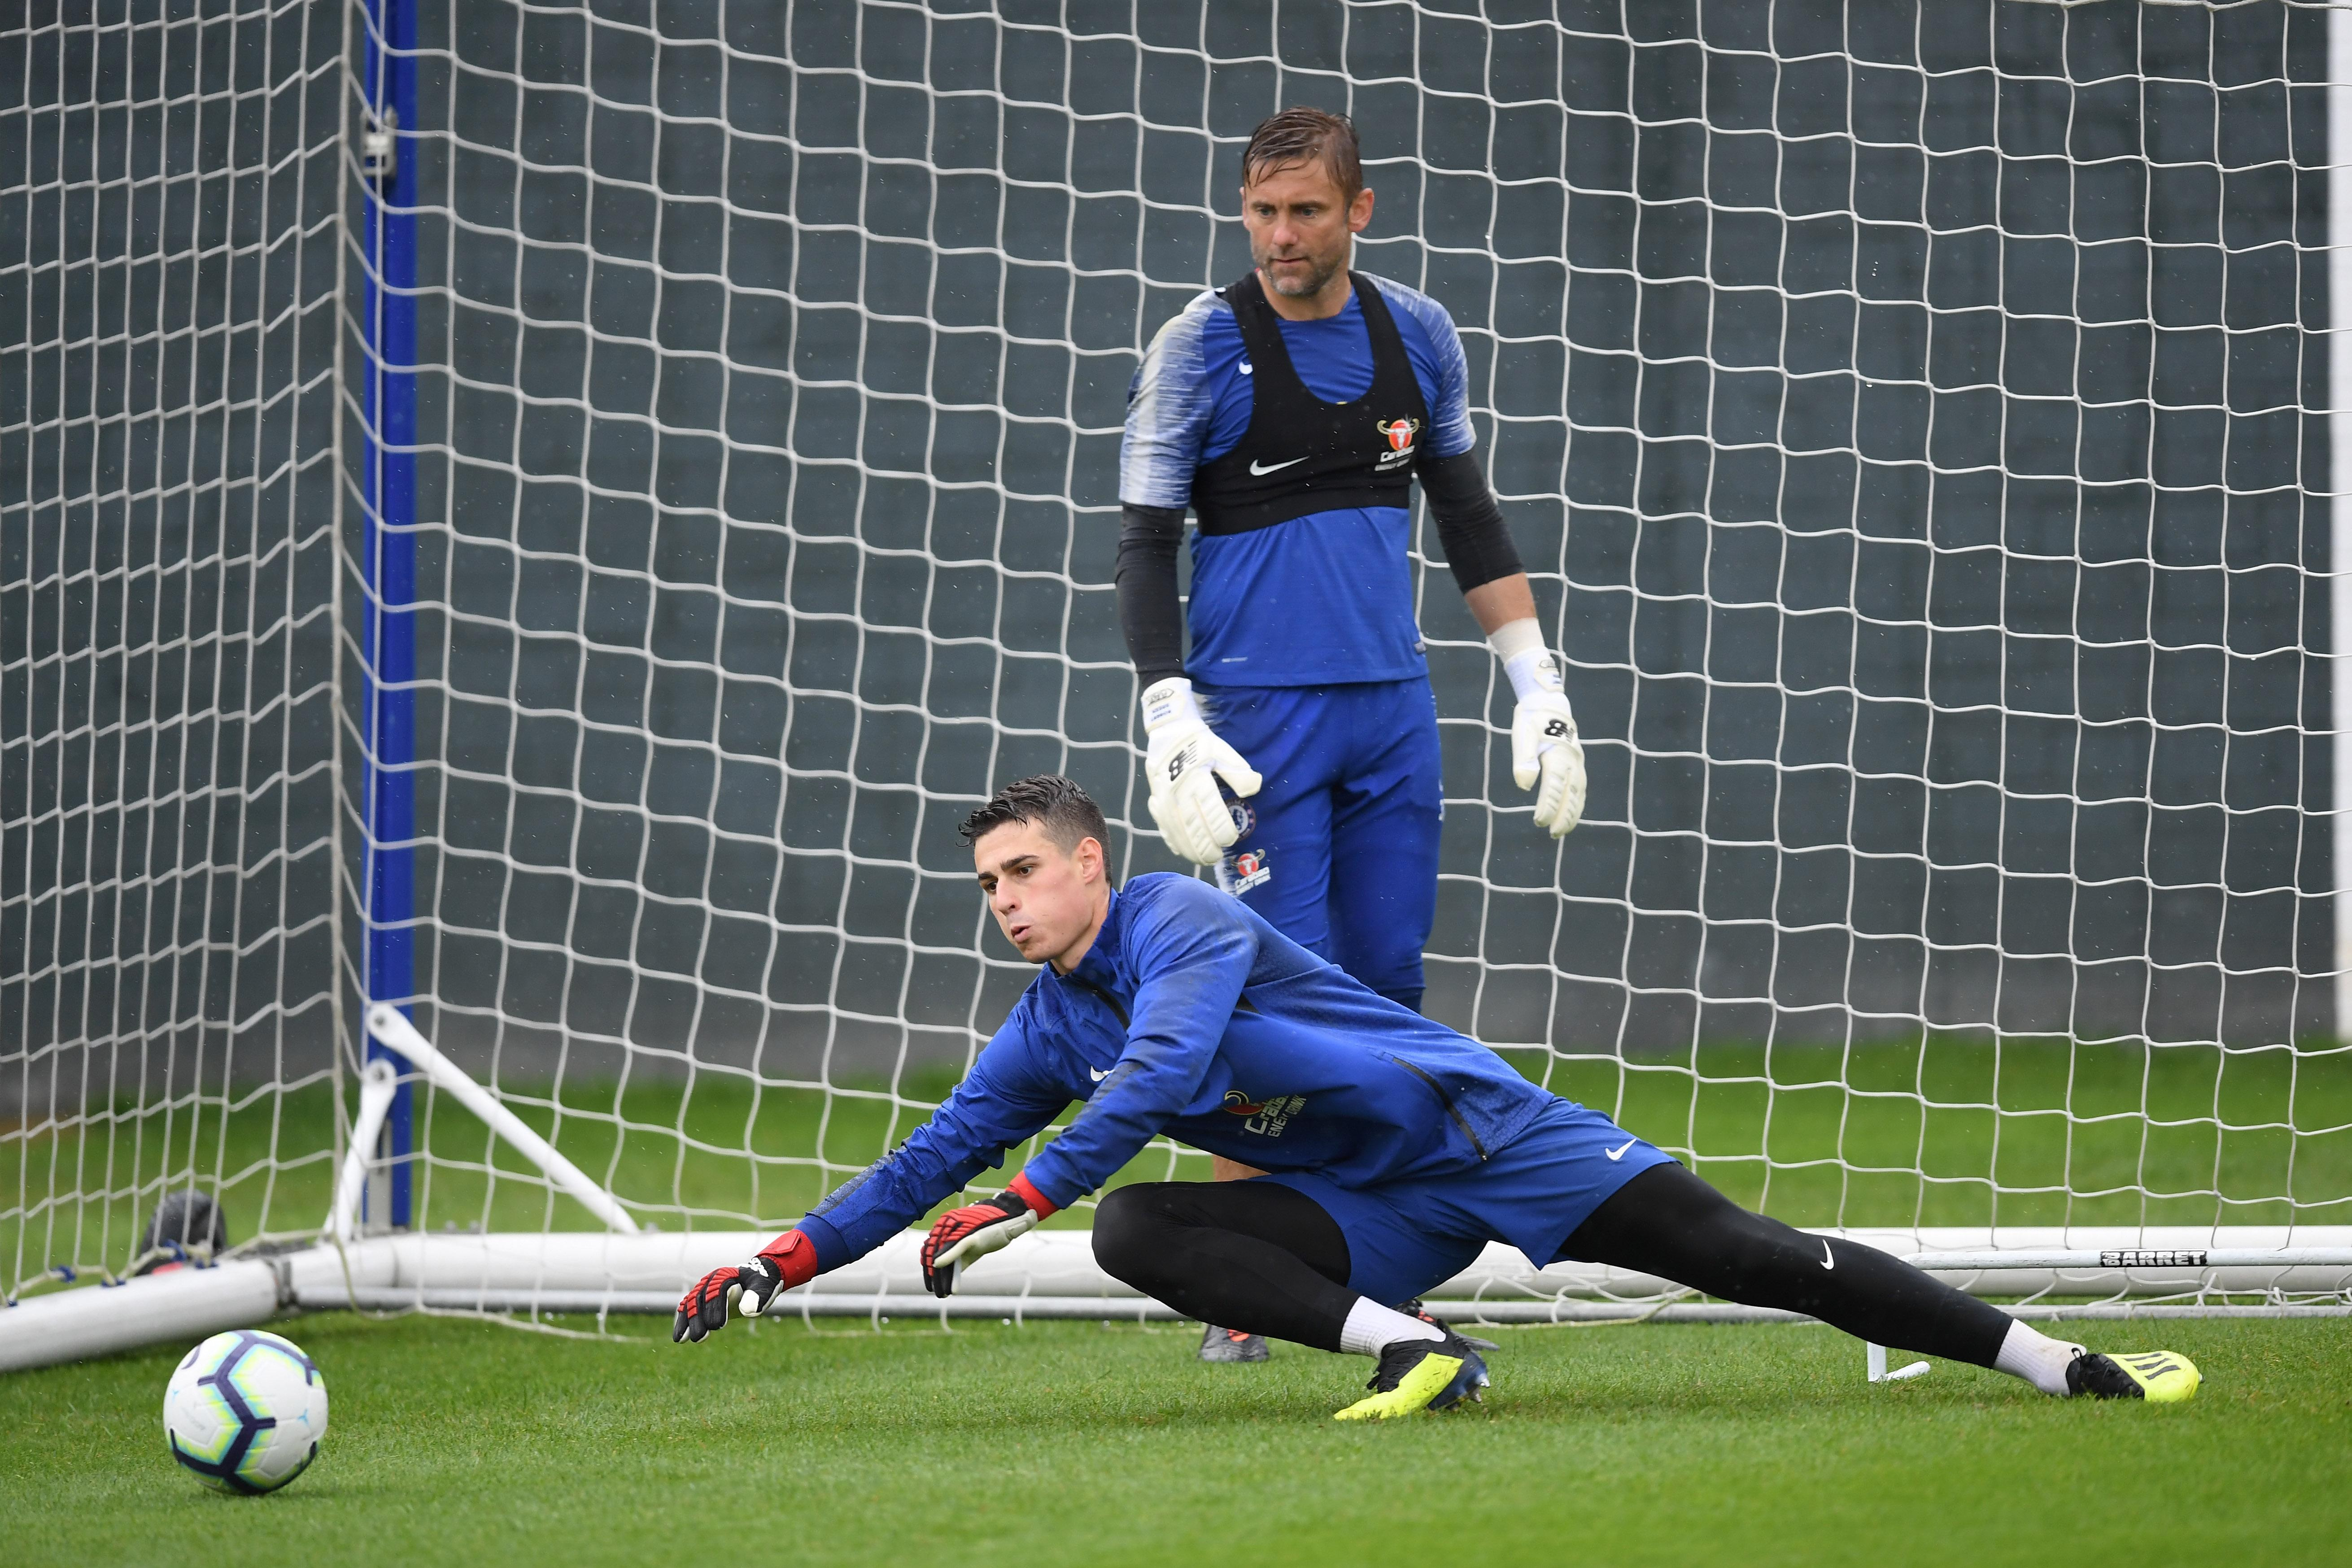 The Spanish goalkeeper took part in his first Chelsea training session on Thursday